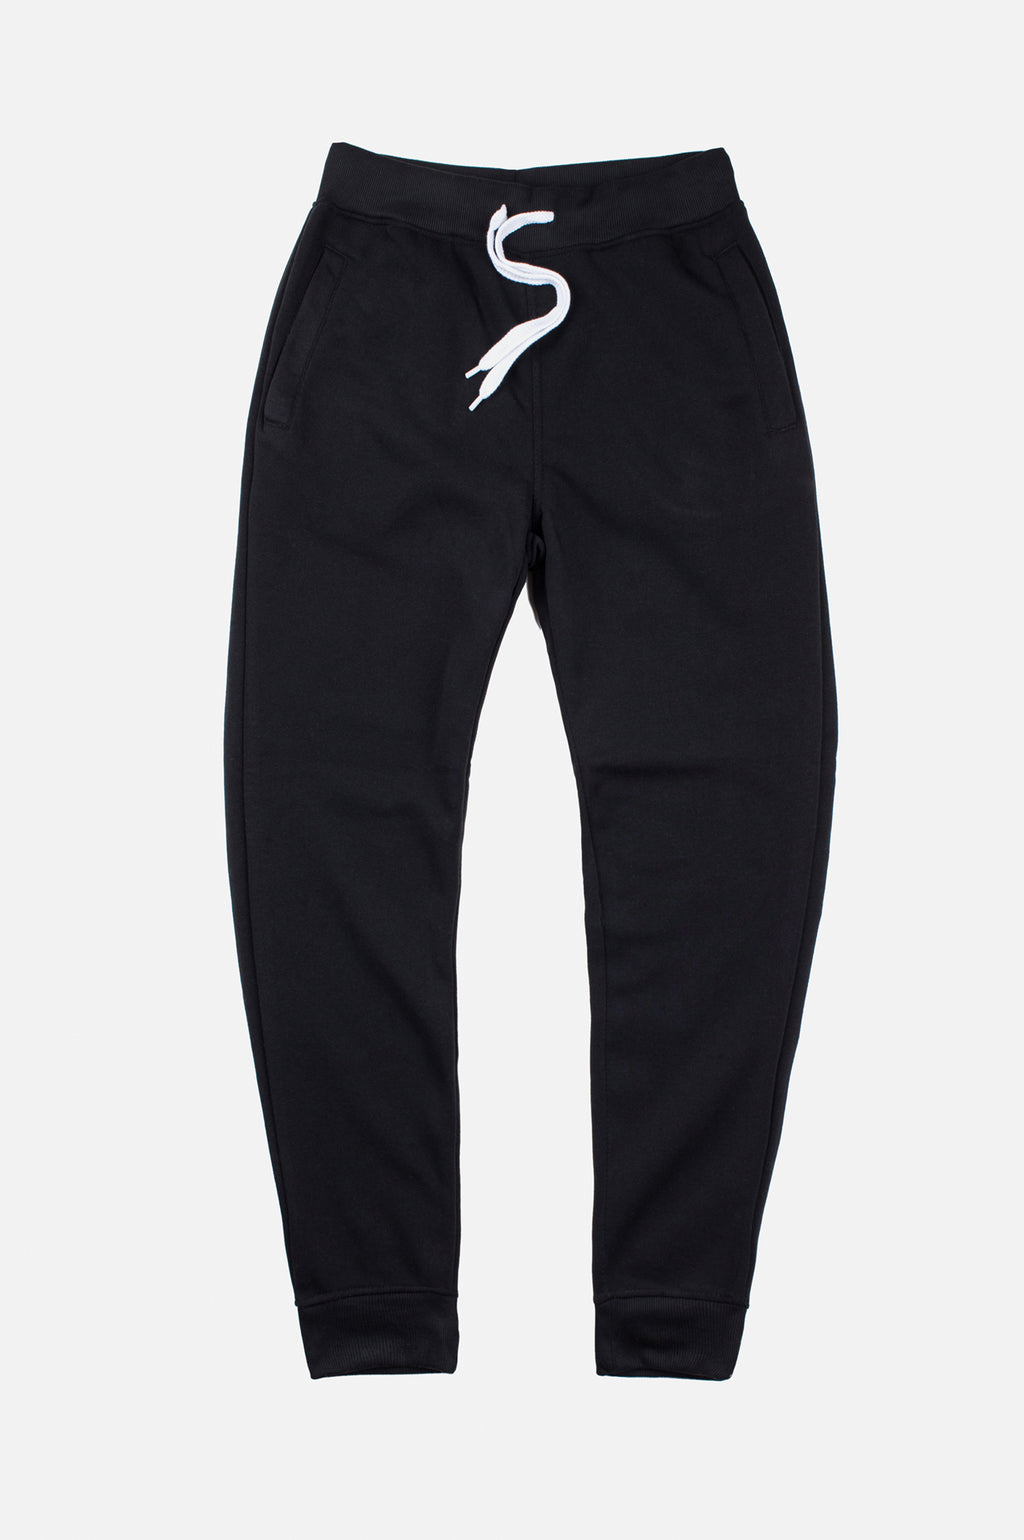 Southpole Mens Fleece Jogger Pants